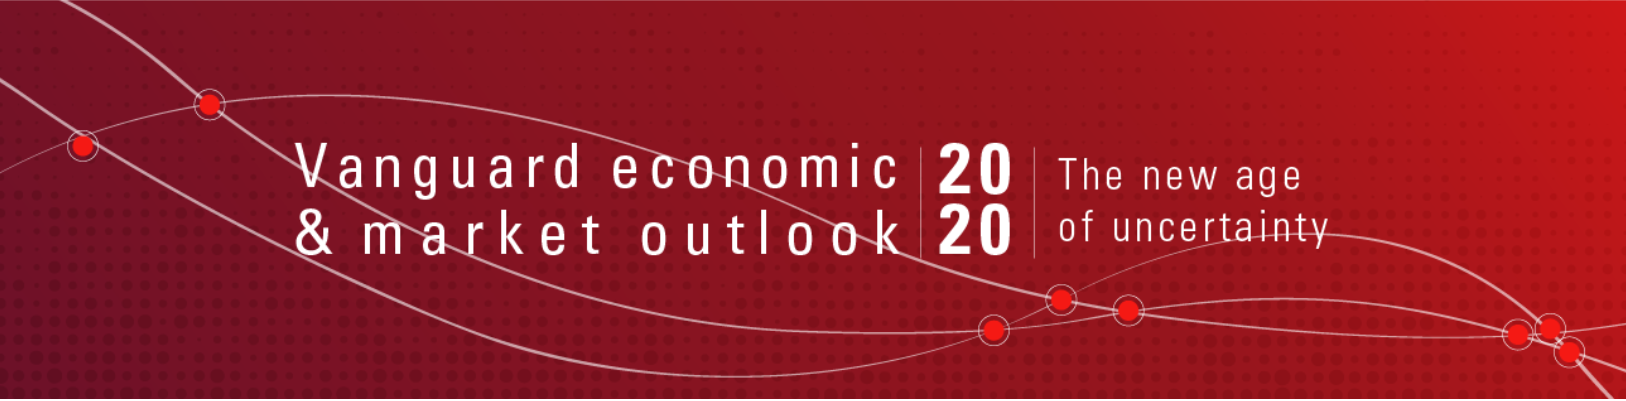 Vanguard outlook 2020